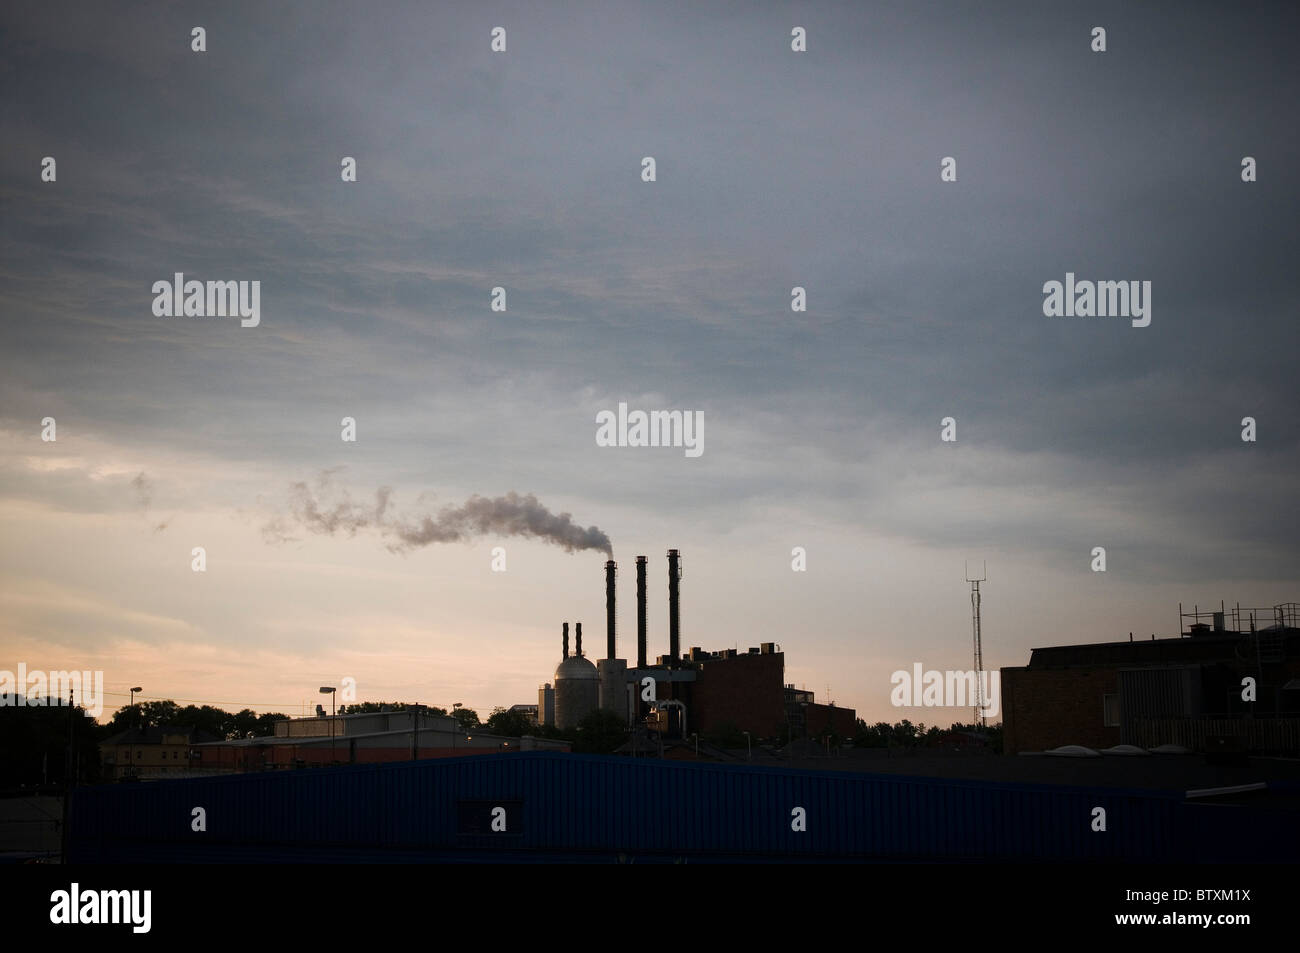 paper mill sweden swedish industry timber wood pulp factory factories smoke stack stacks chimneys chimney industry - Stock Image